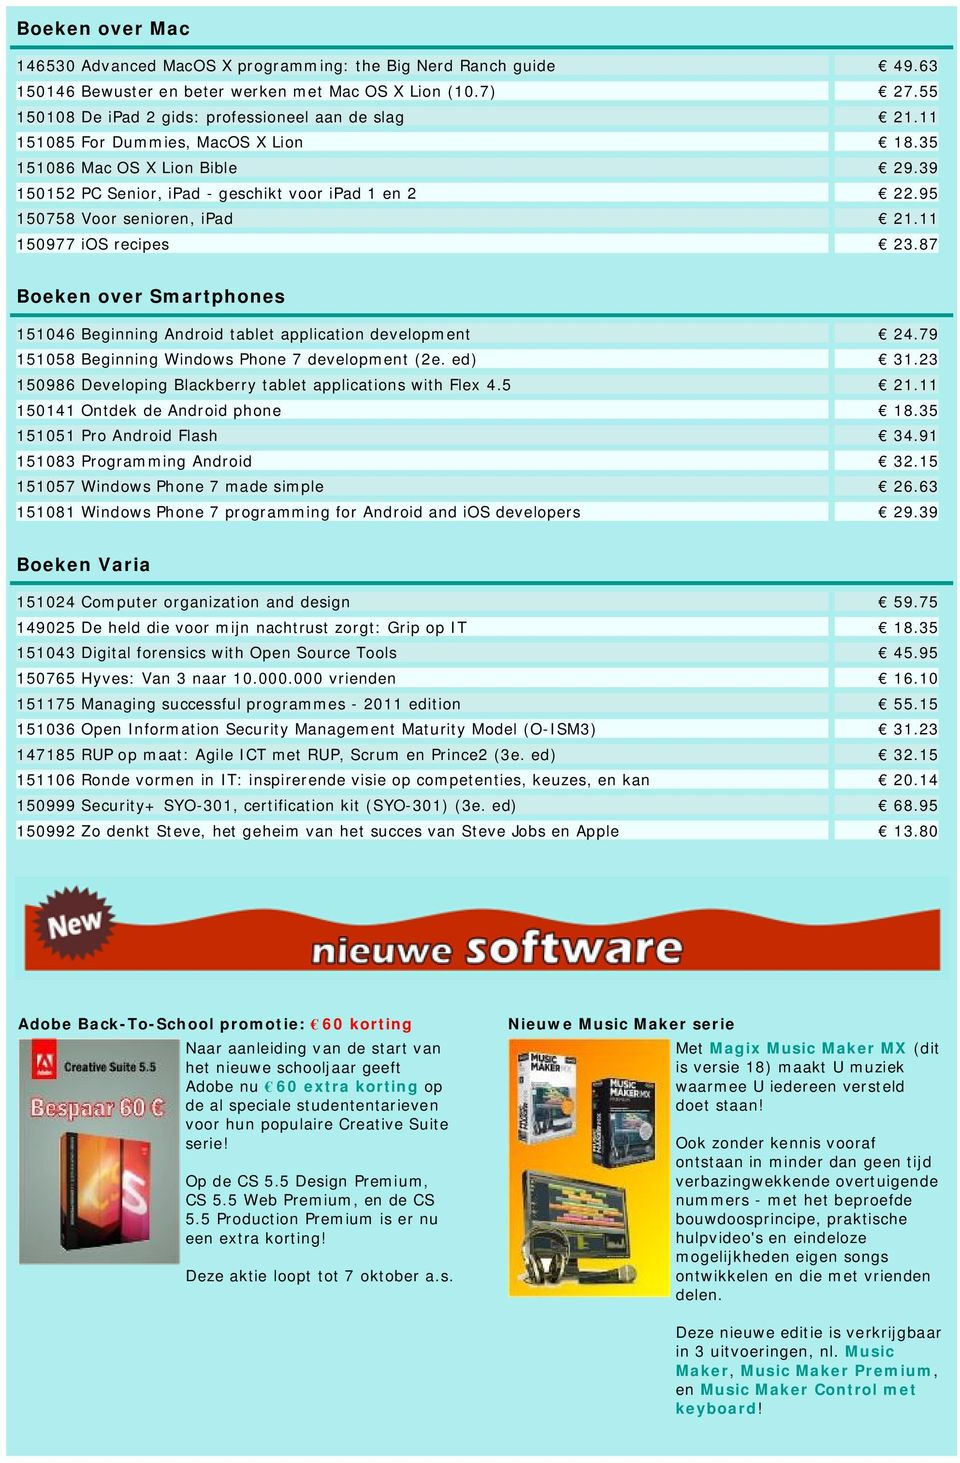 87 Boeken over Smartphones 151046 Beginning Android tablet application development 24.79 151058 Beginning Windows Phone 7 development (2e. ed) 31.